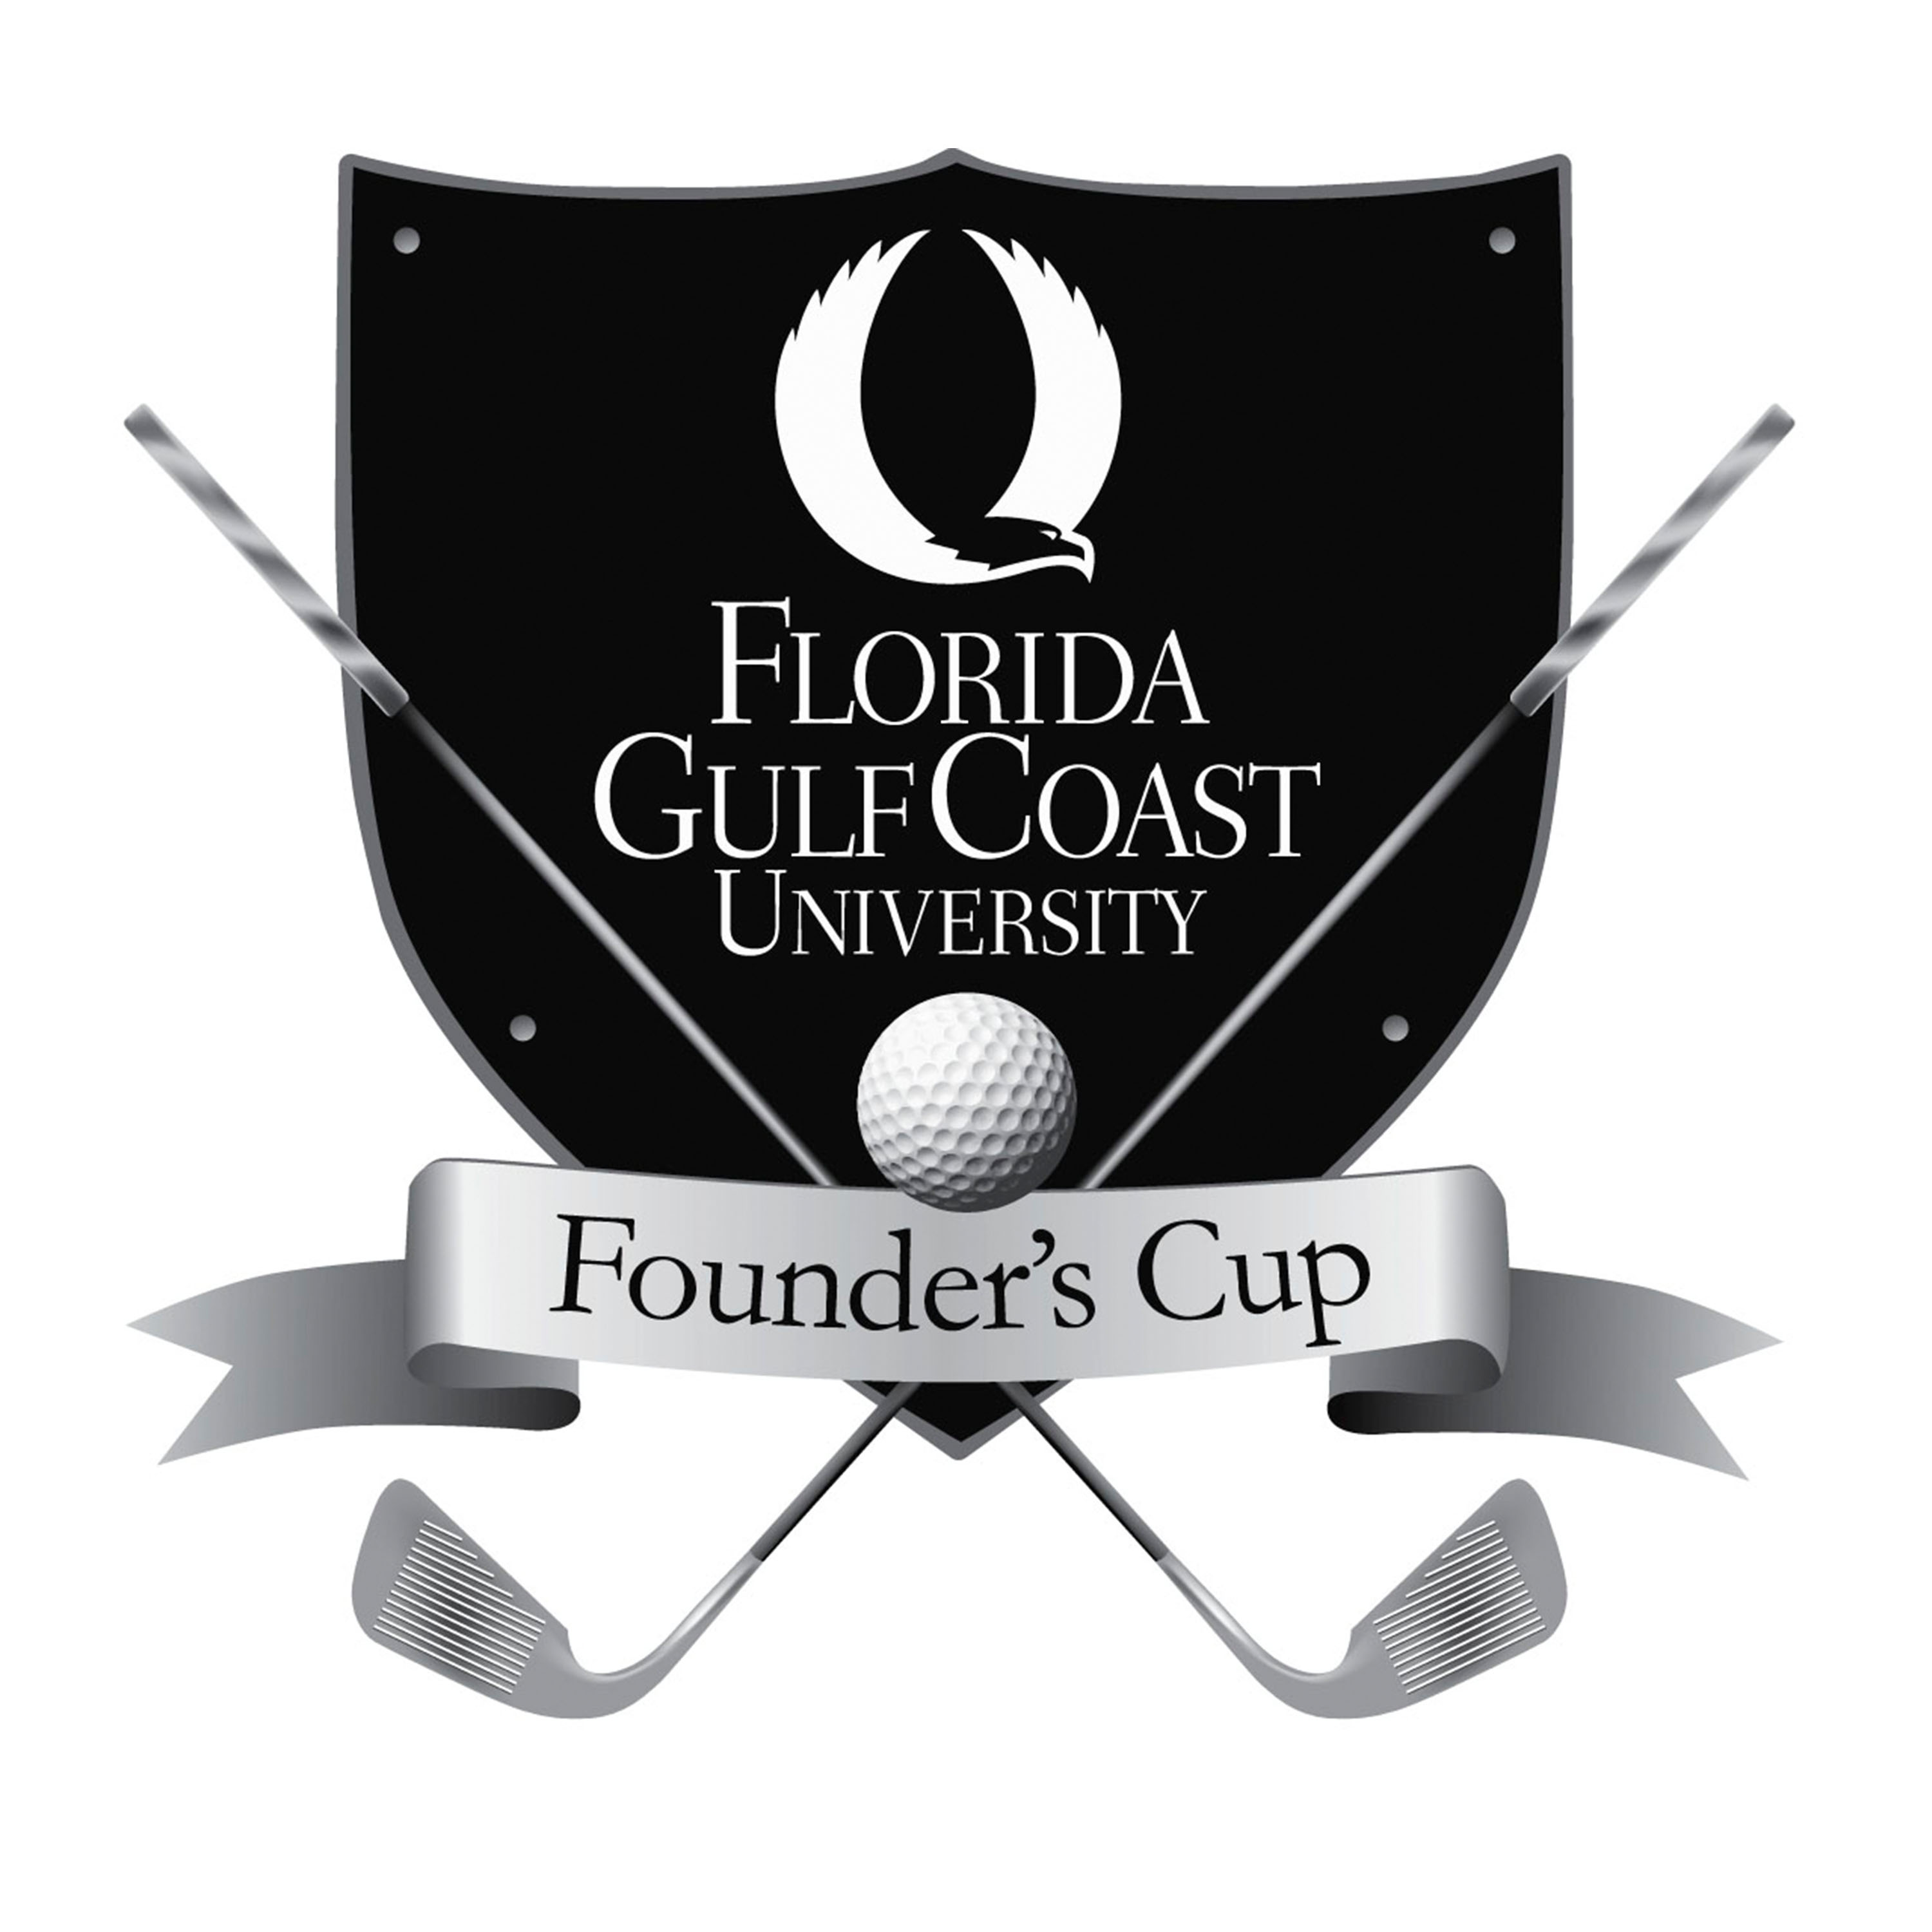 FGCU Founder's Cup